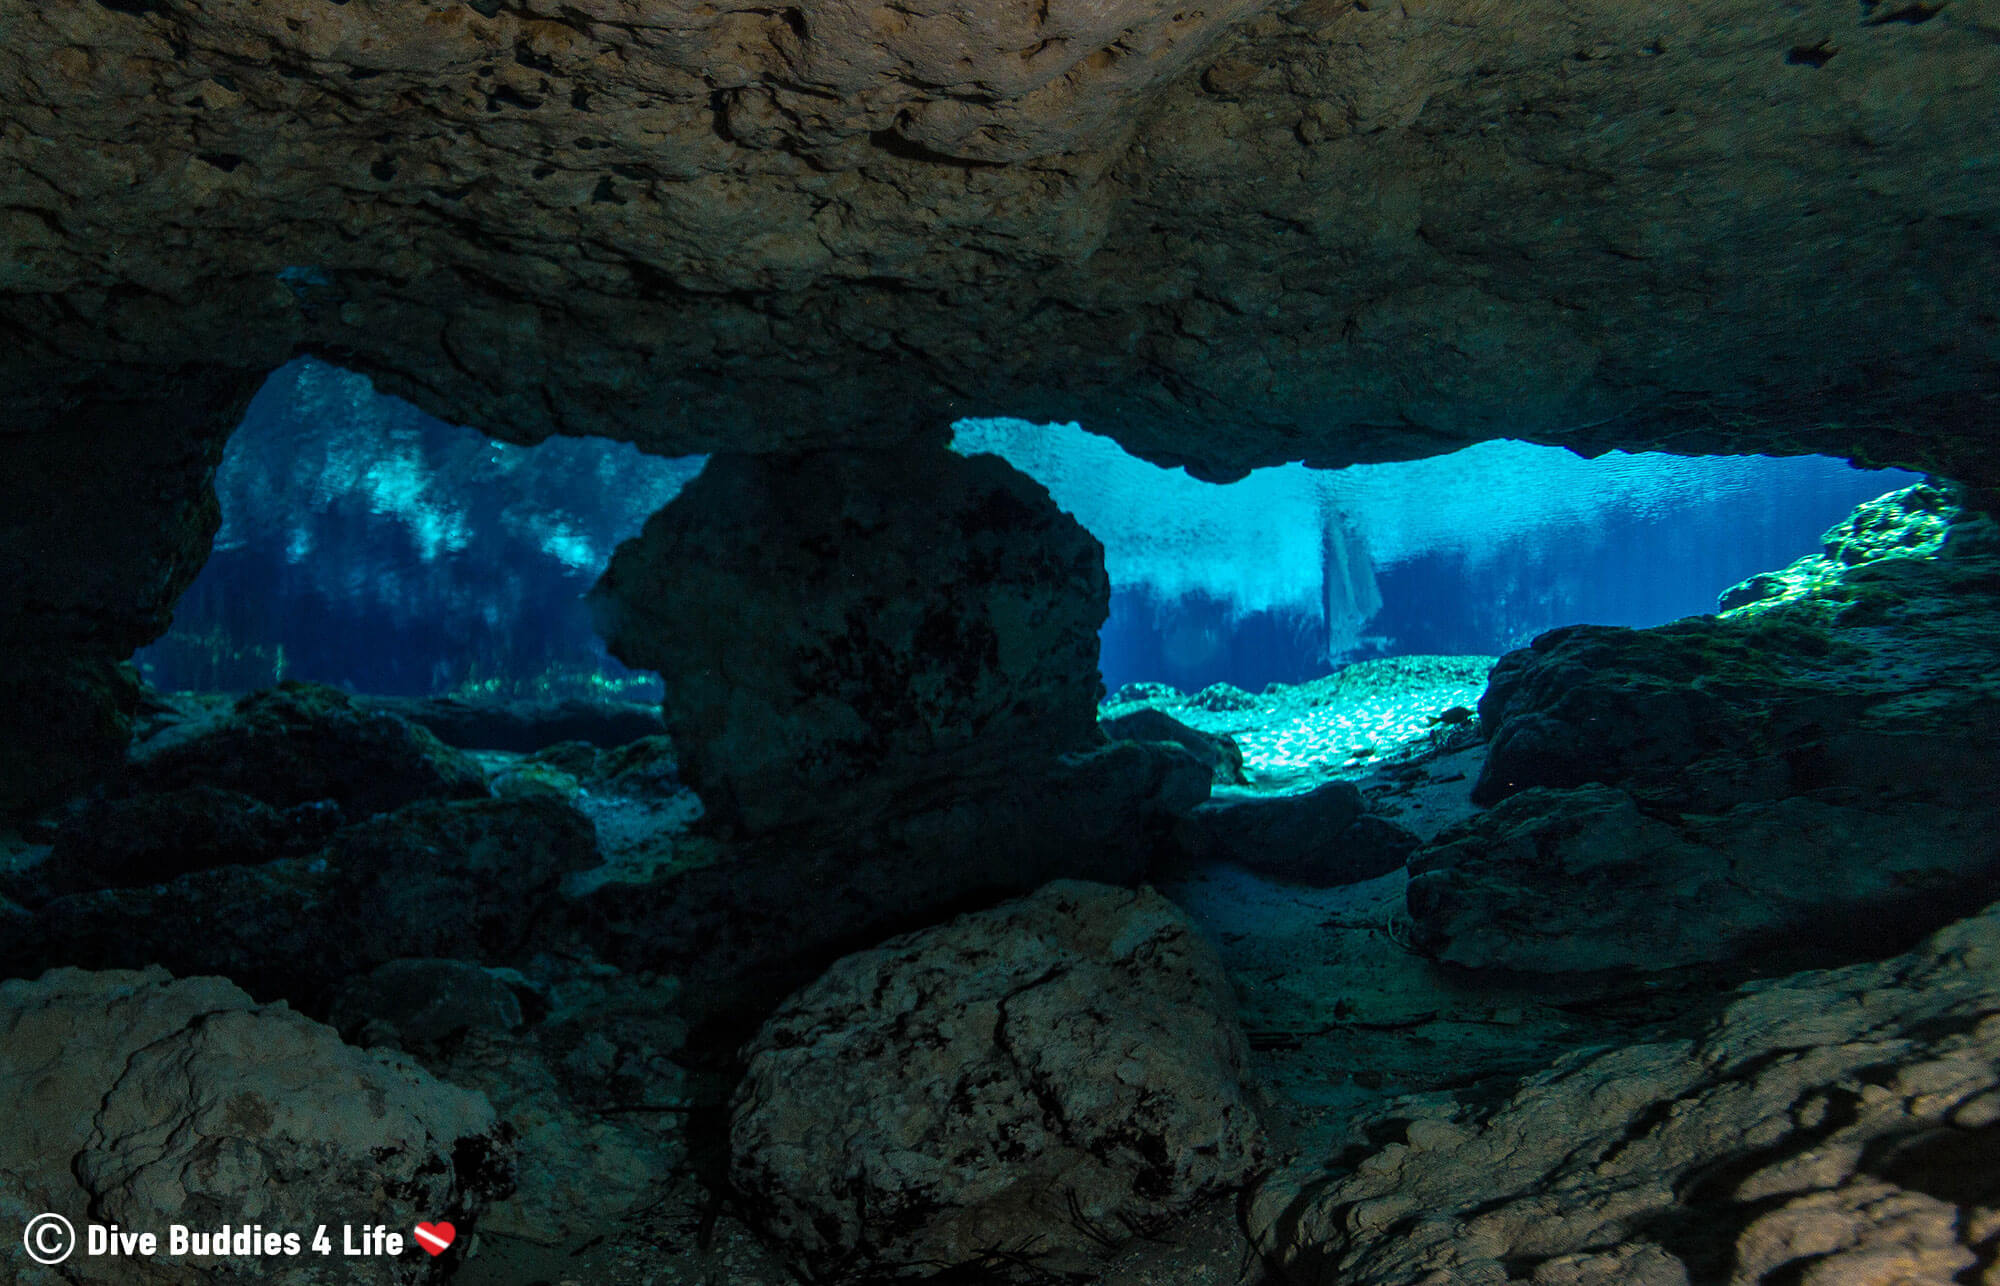 Looking Out Of The Cavern From Underwater In Ginnie